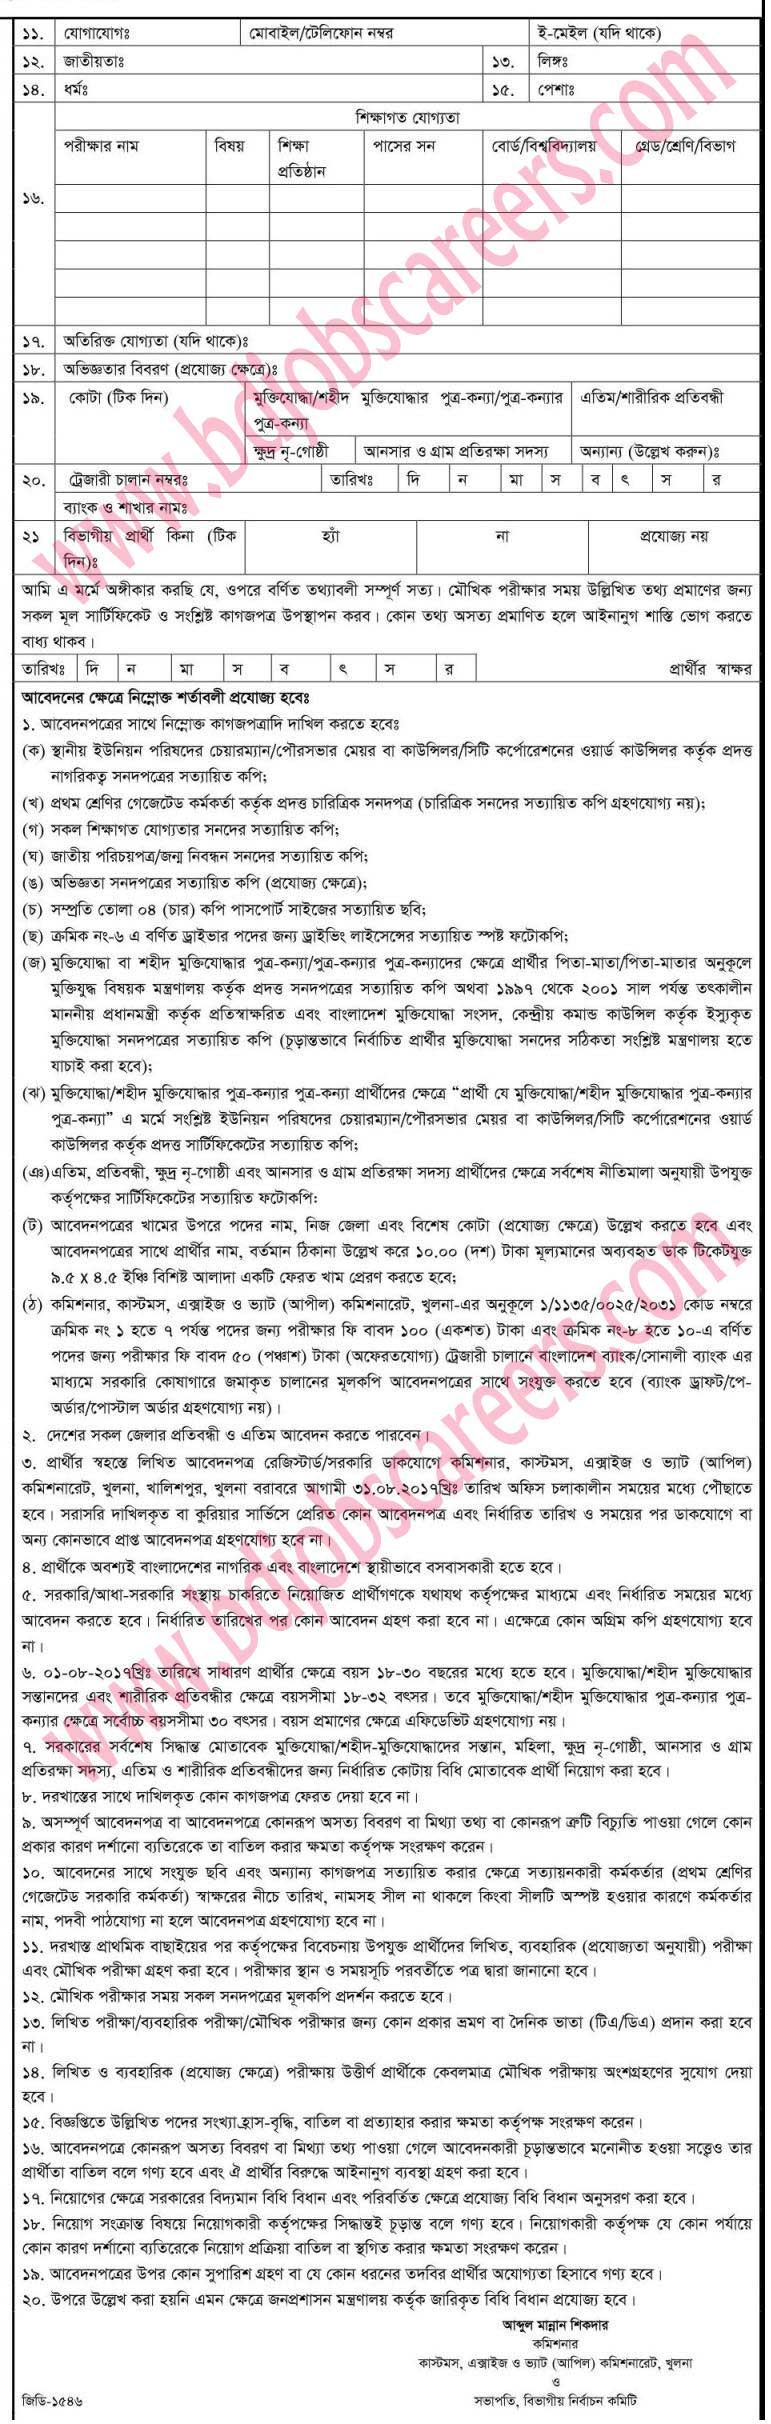 Bangladesh Customs Excise and VAT Commissionrate Jobs Circular 2017